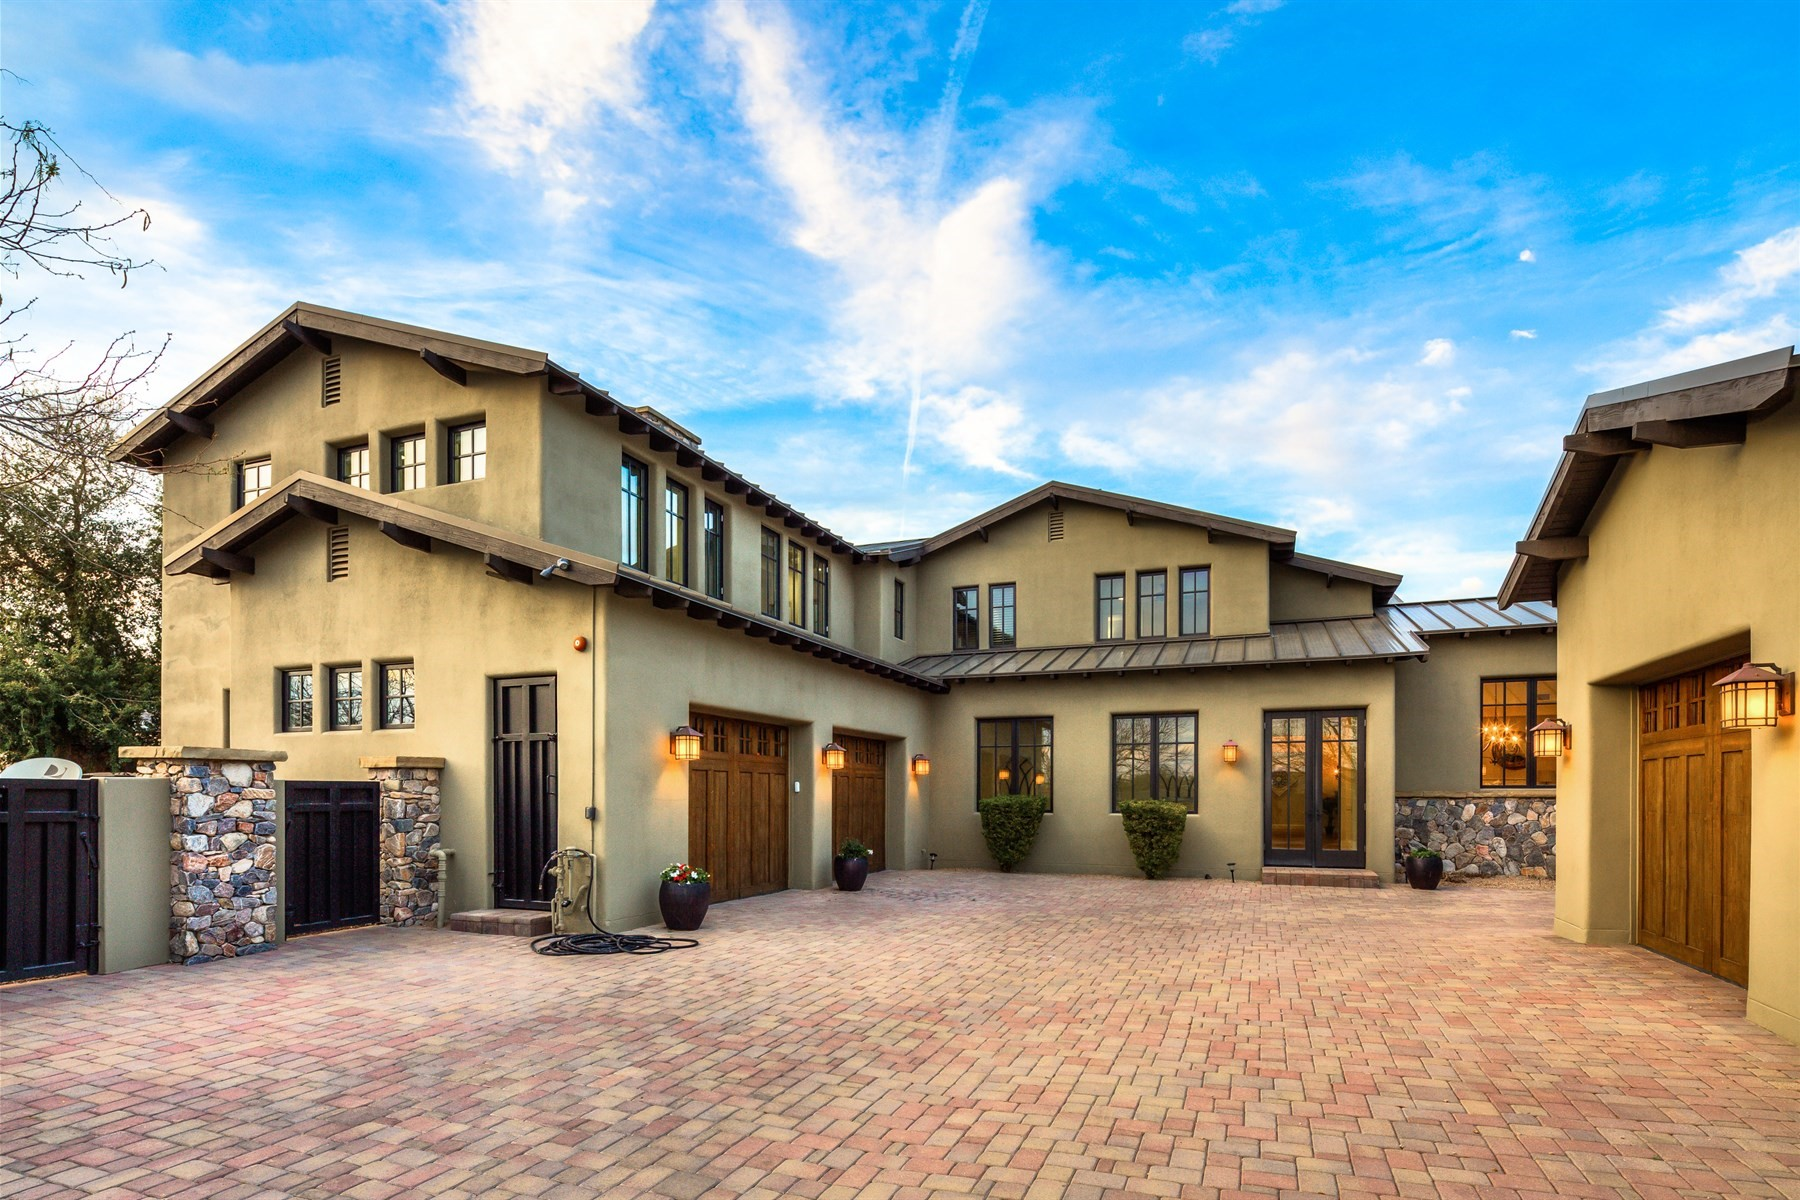 Single Family Home for Sale at Arcadia at Silverleaf 19394 N 99th St #3630, Scottsdale, Arizona, 85255 United States